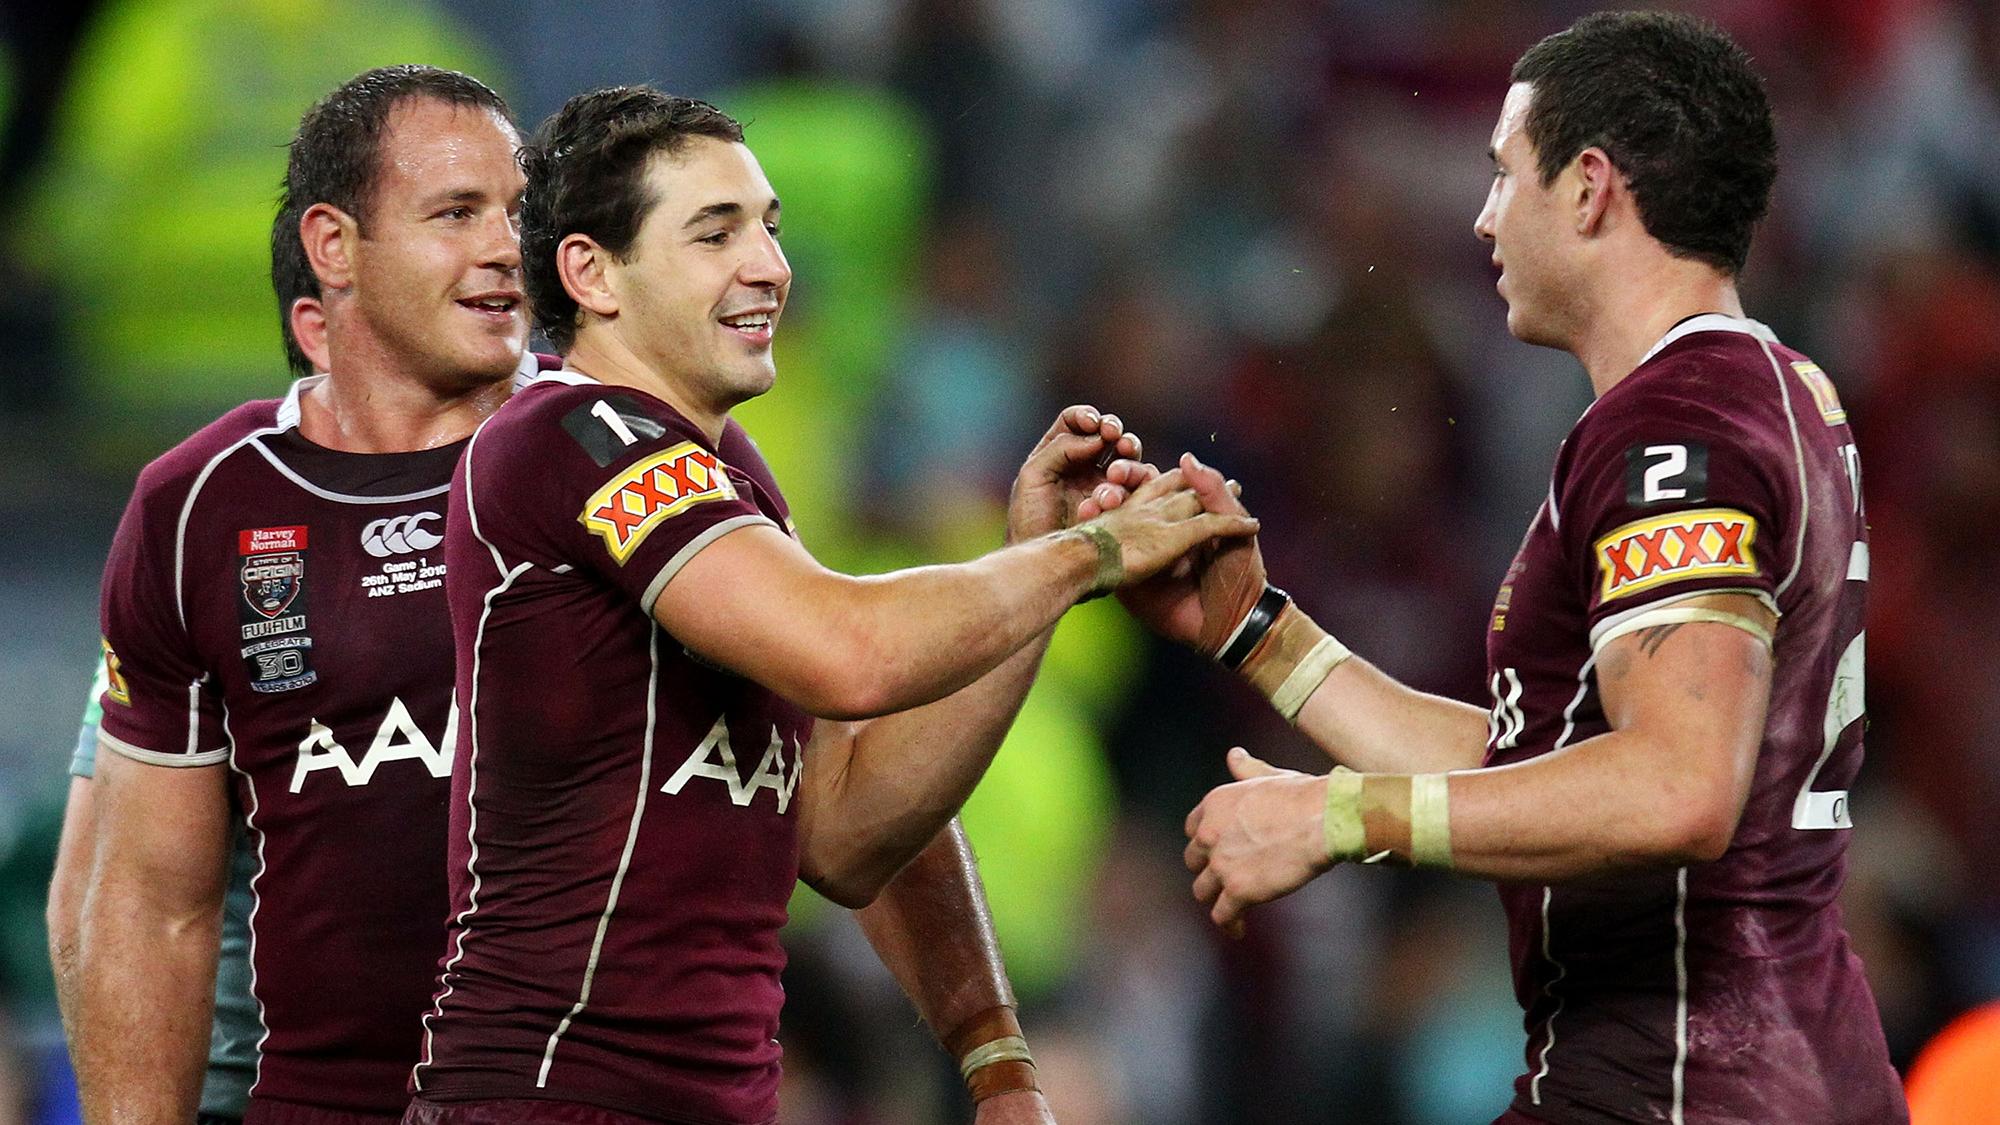 Qld Origin team: Anthony Milford named five-eighth, Johnathan Thurston 18th man